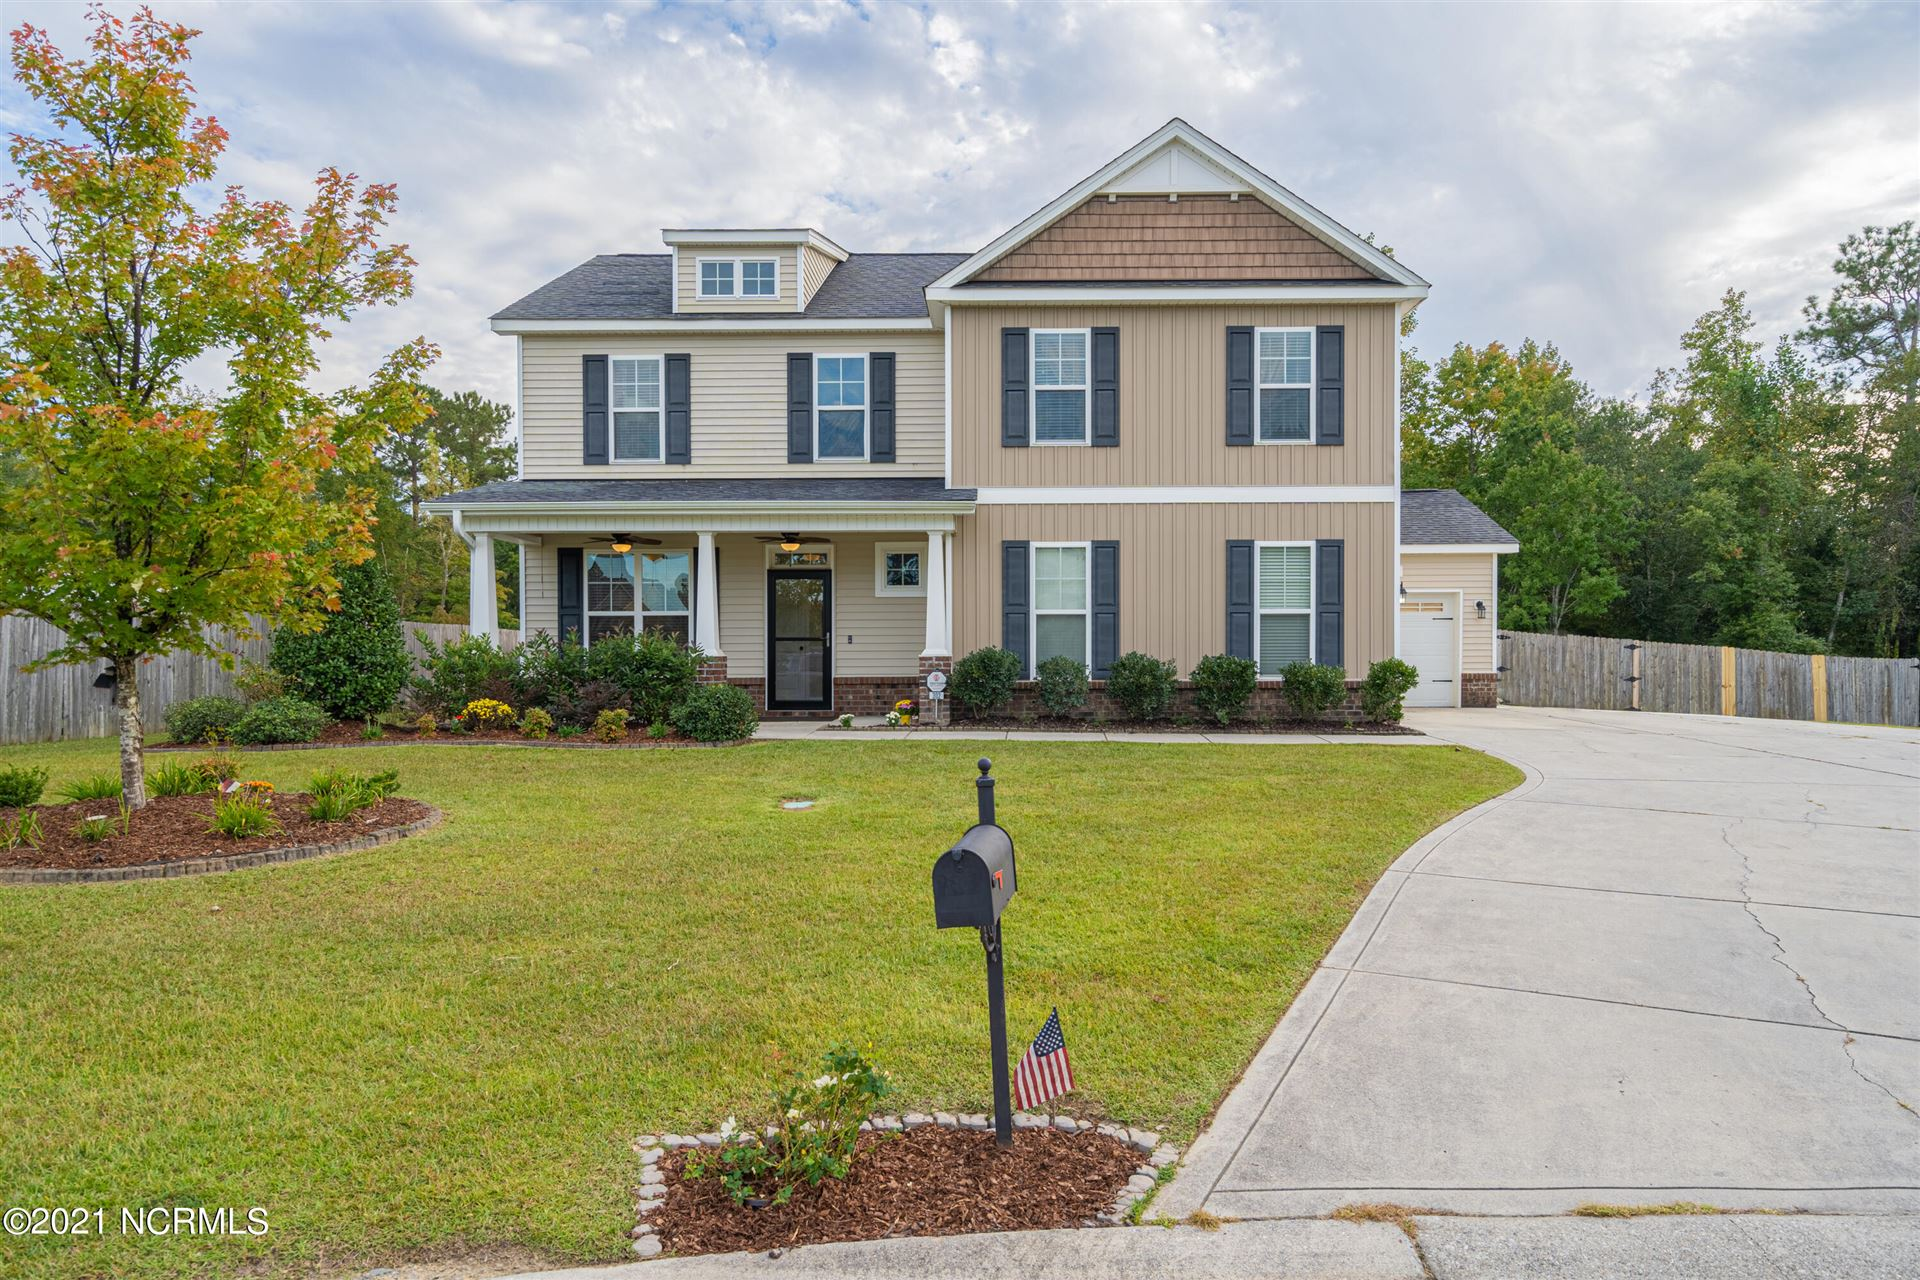 Photo of 302 First Post Road, Jacksonville, NC 28546 (MLS # 100296302)